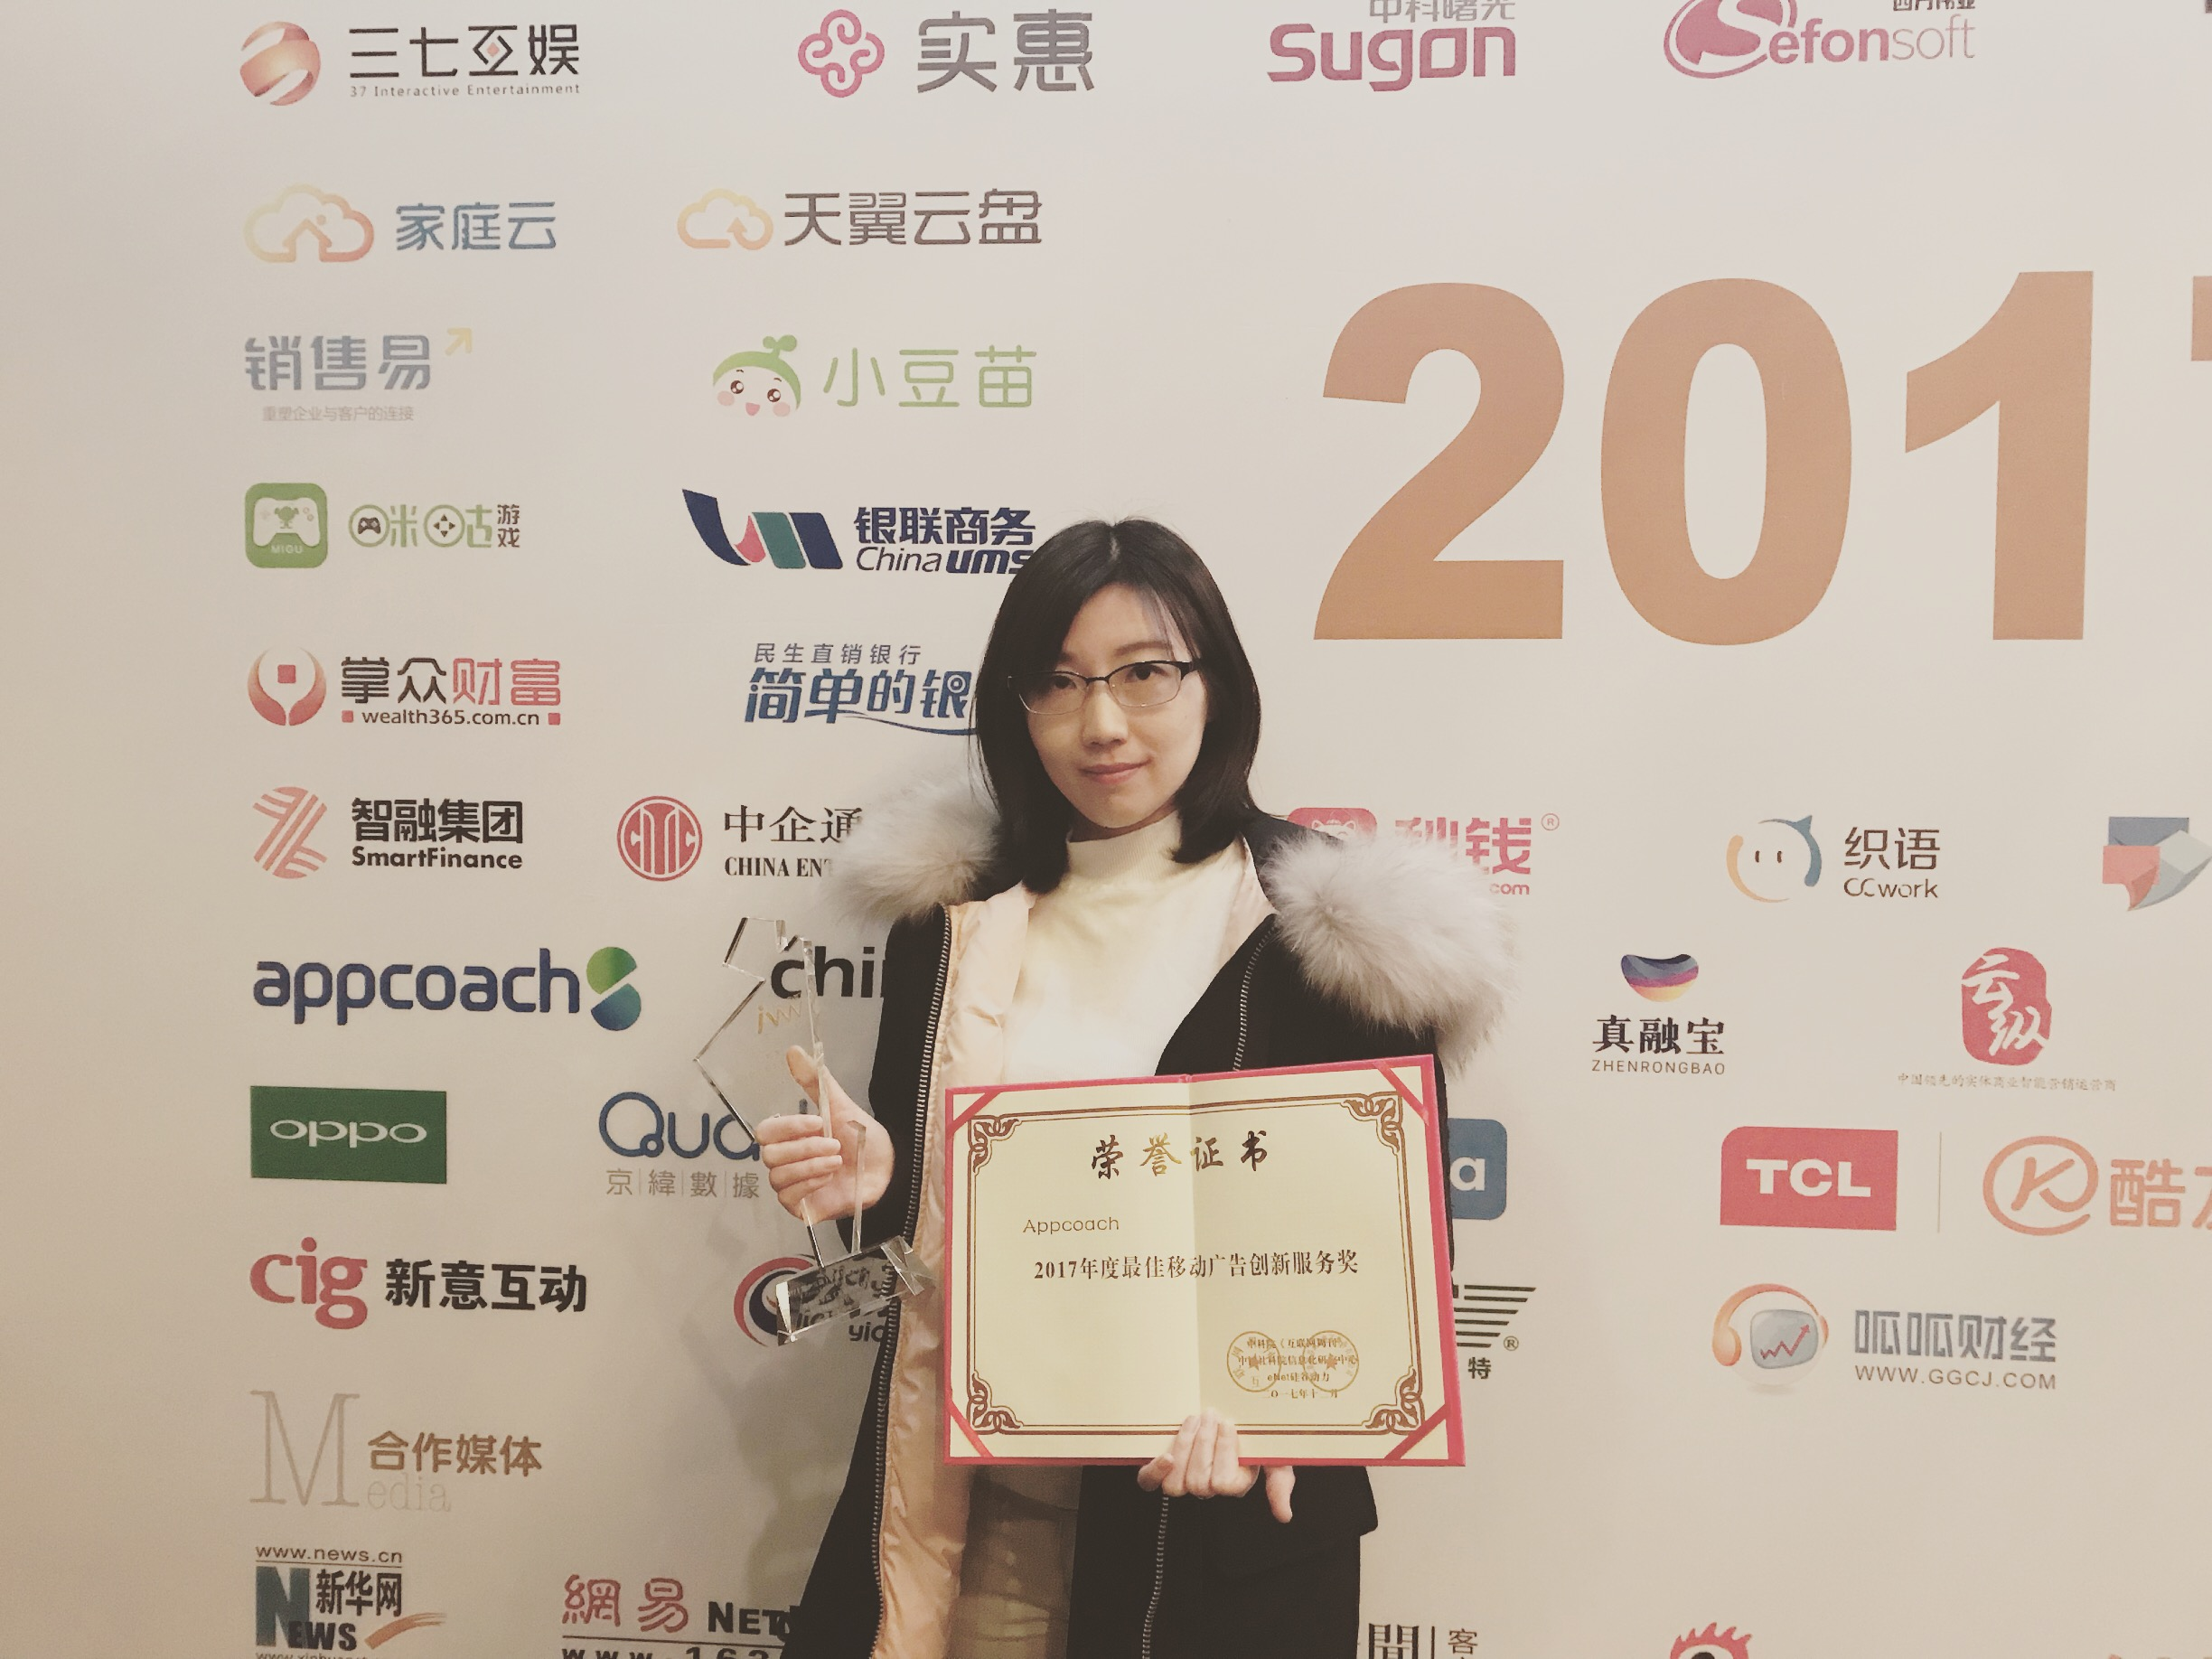 Kelly Wang (BD  director) attented and accepted the award on behalf of Appcoach